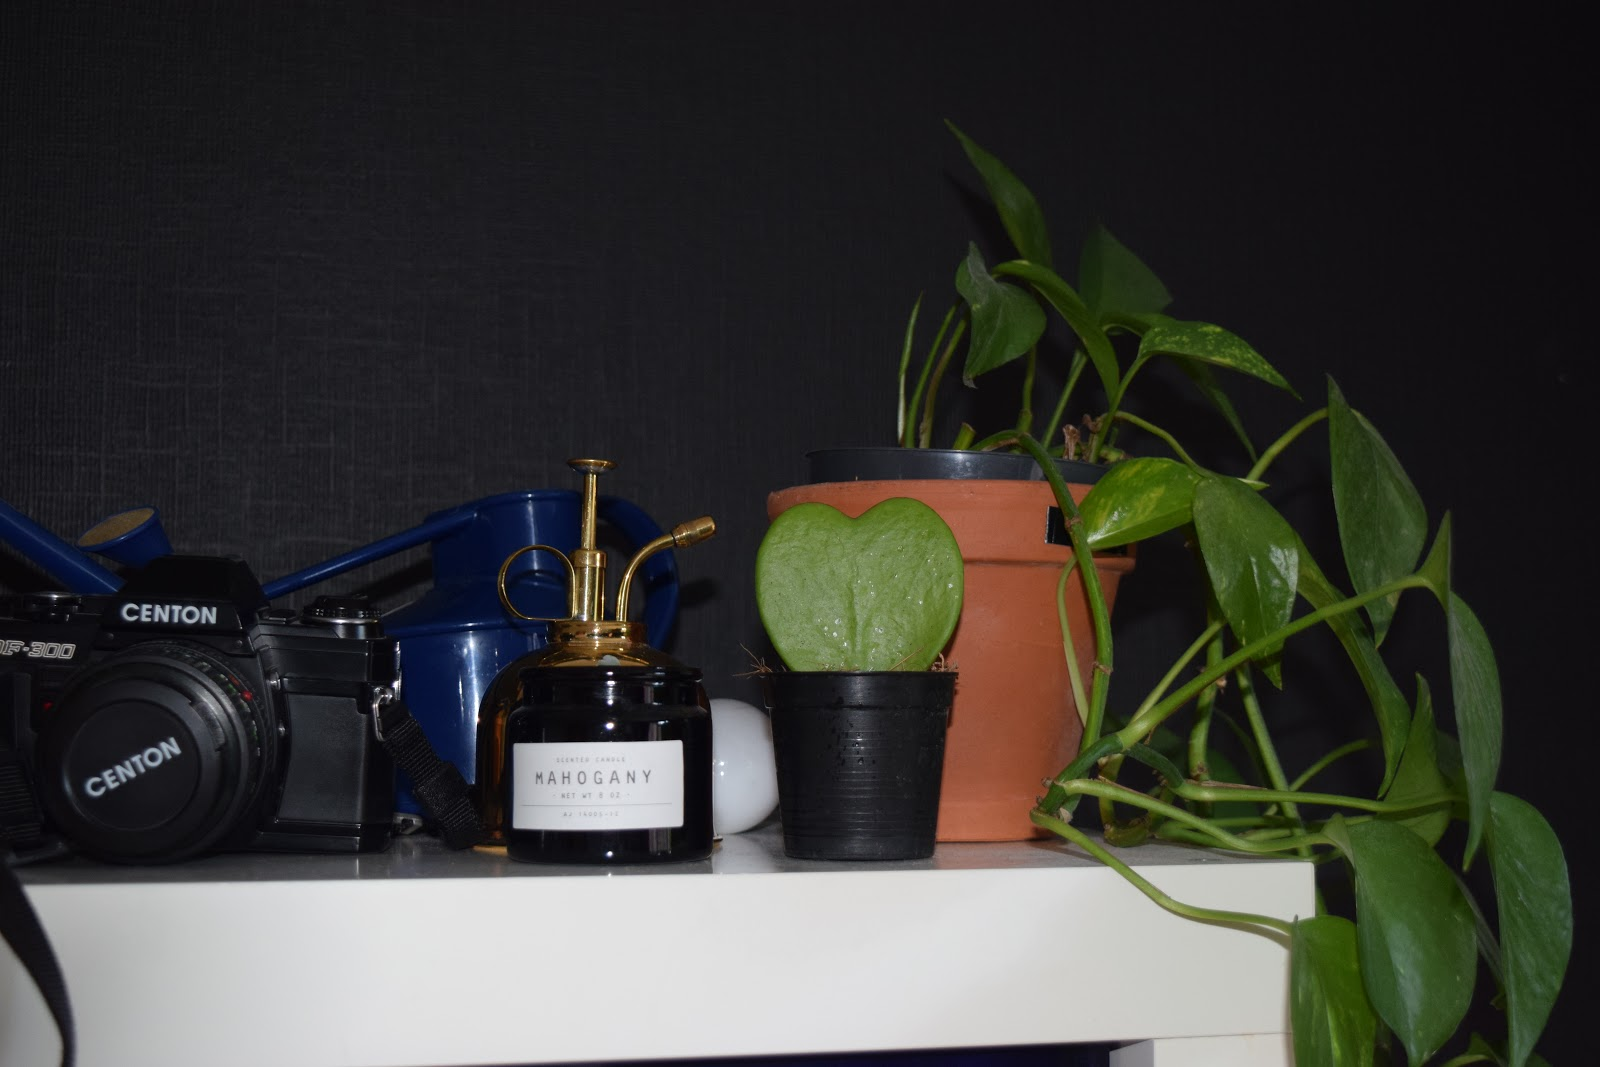 shelf with plants, vintage camera, watering can and plant mister